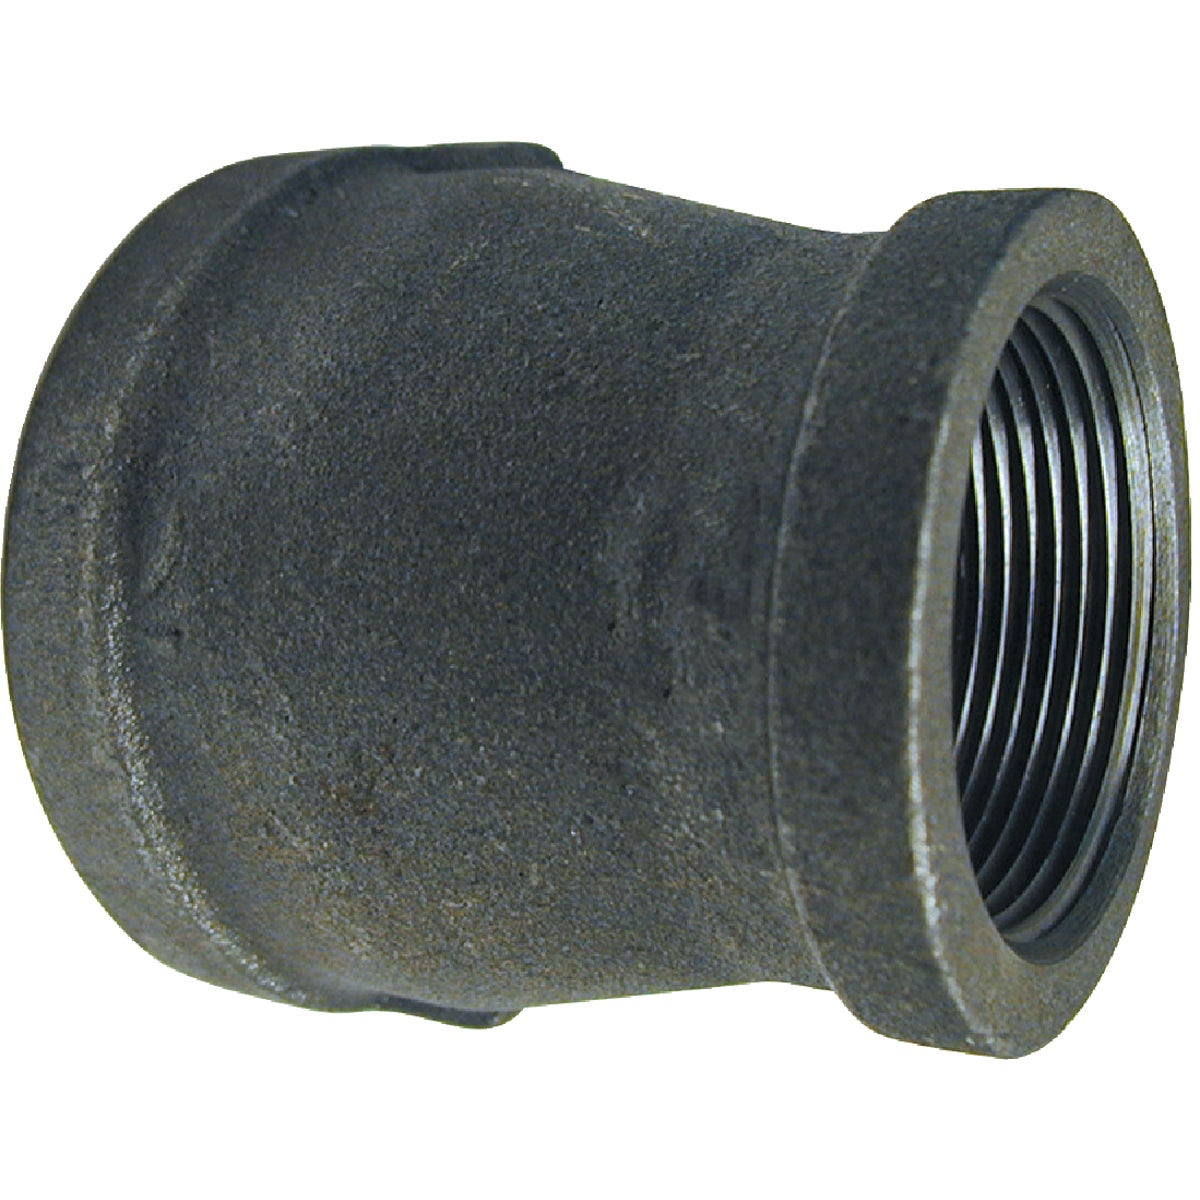 1X1/2 BLACK COUPLING - 521-353BG by Mueller B K